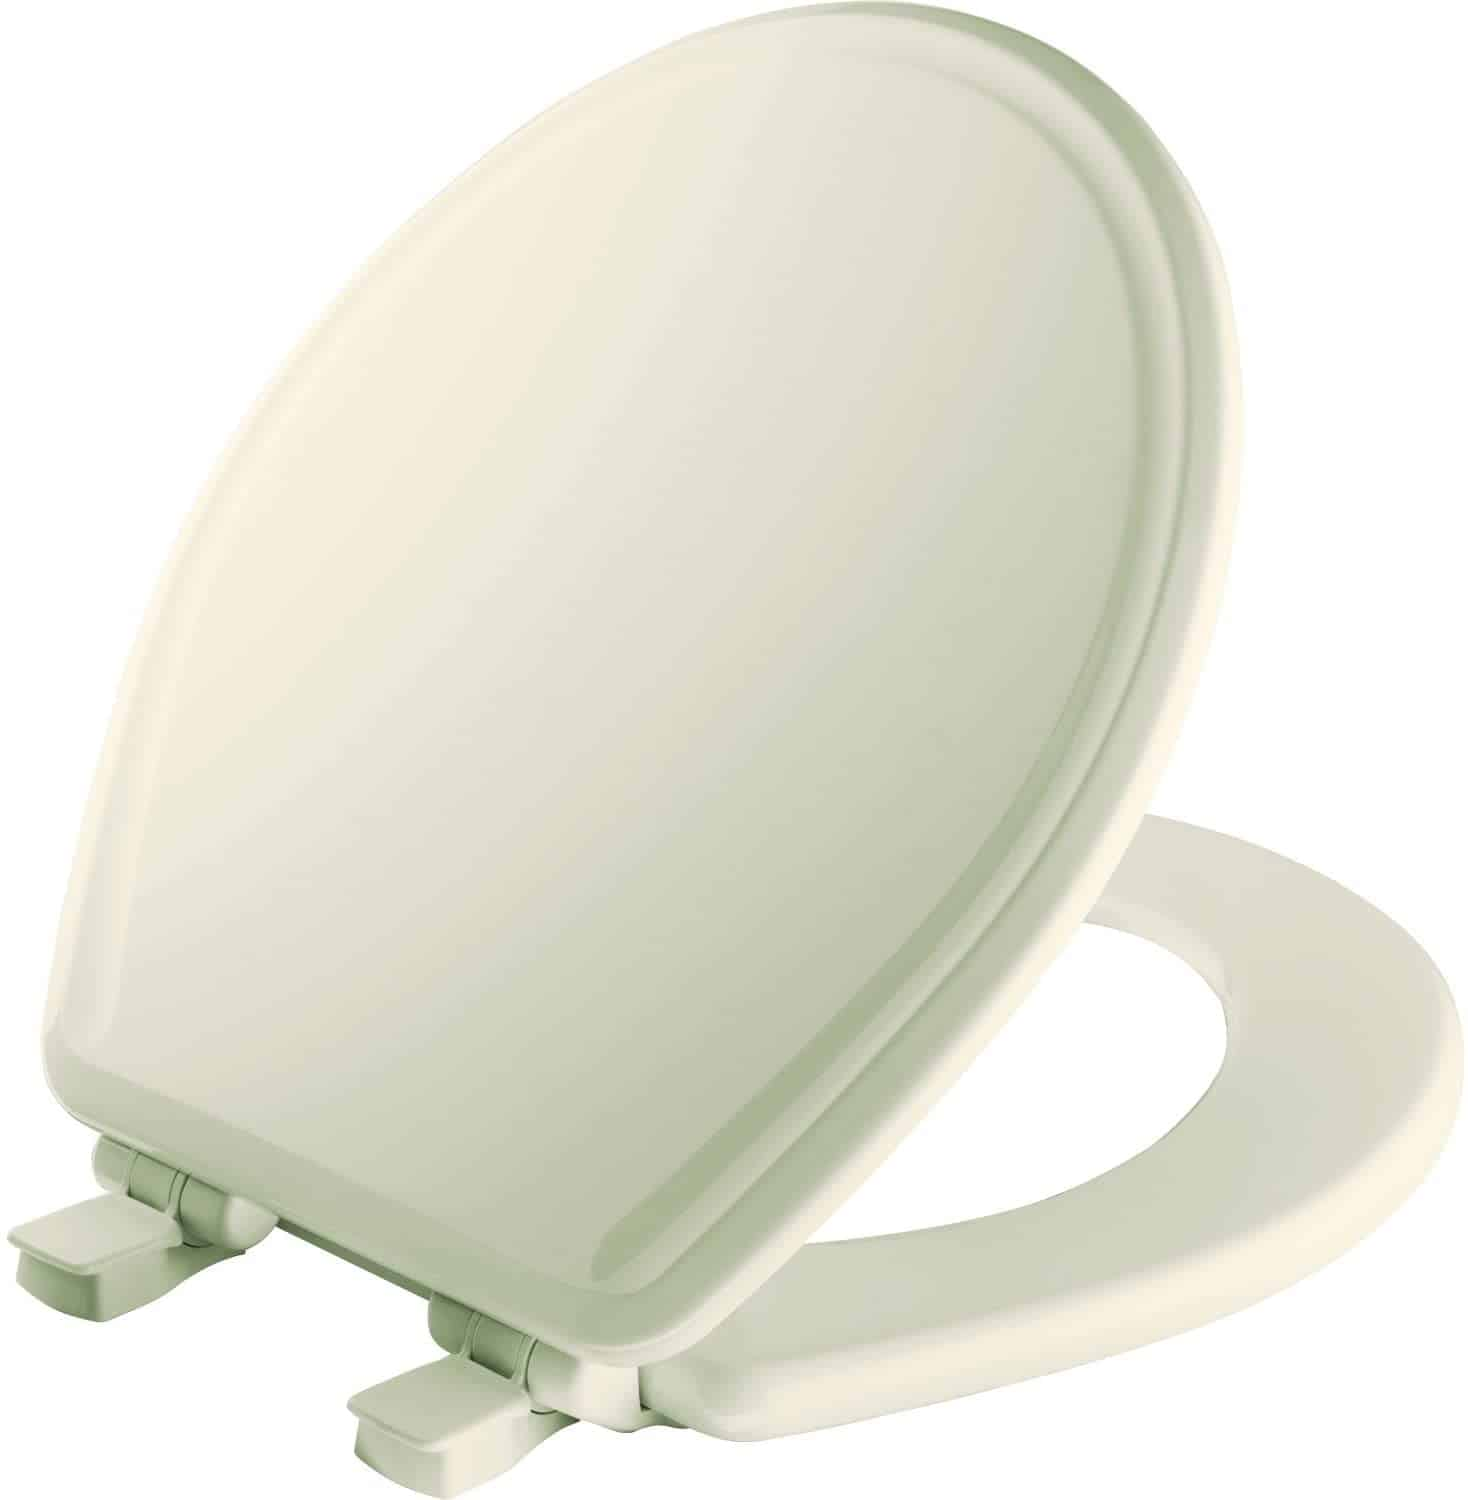 MAYFAIR 848SLOW 346 Toilet Seat will Slow Close, Never Loosen and Easily Remove,